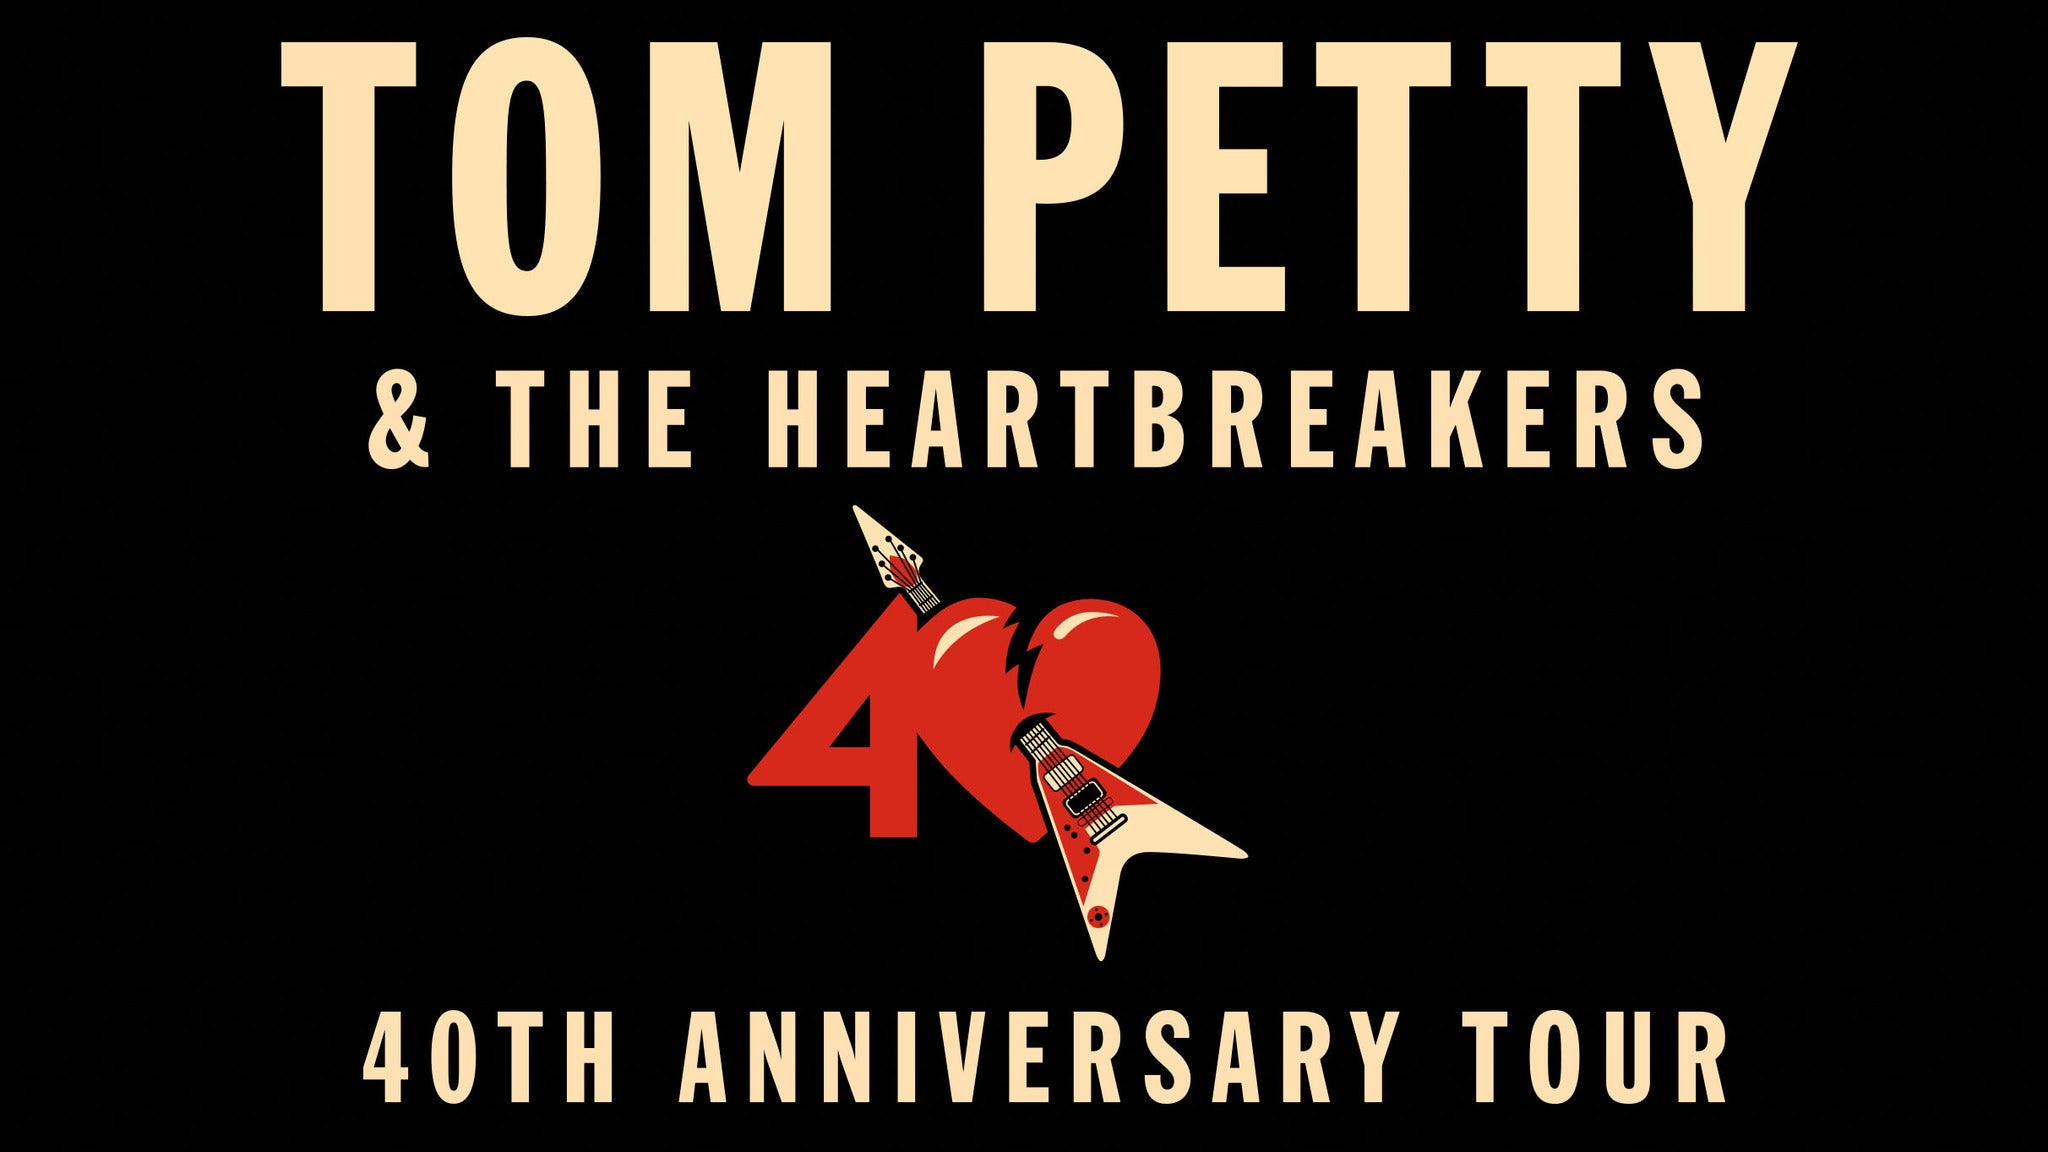 Tom Petty & The Heartbreakers at Hollywood Bowl